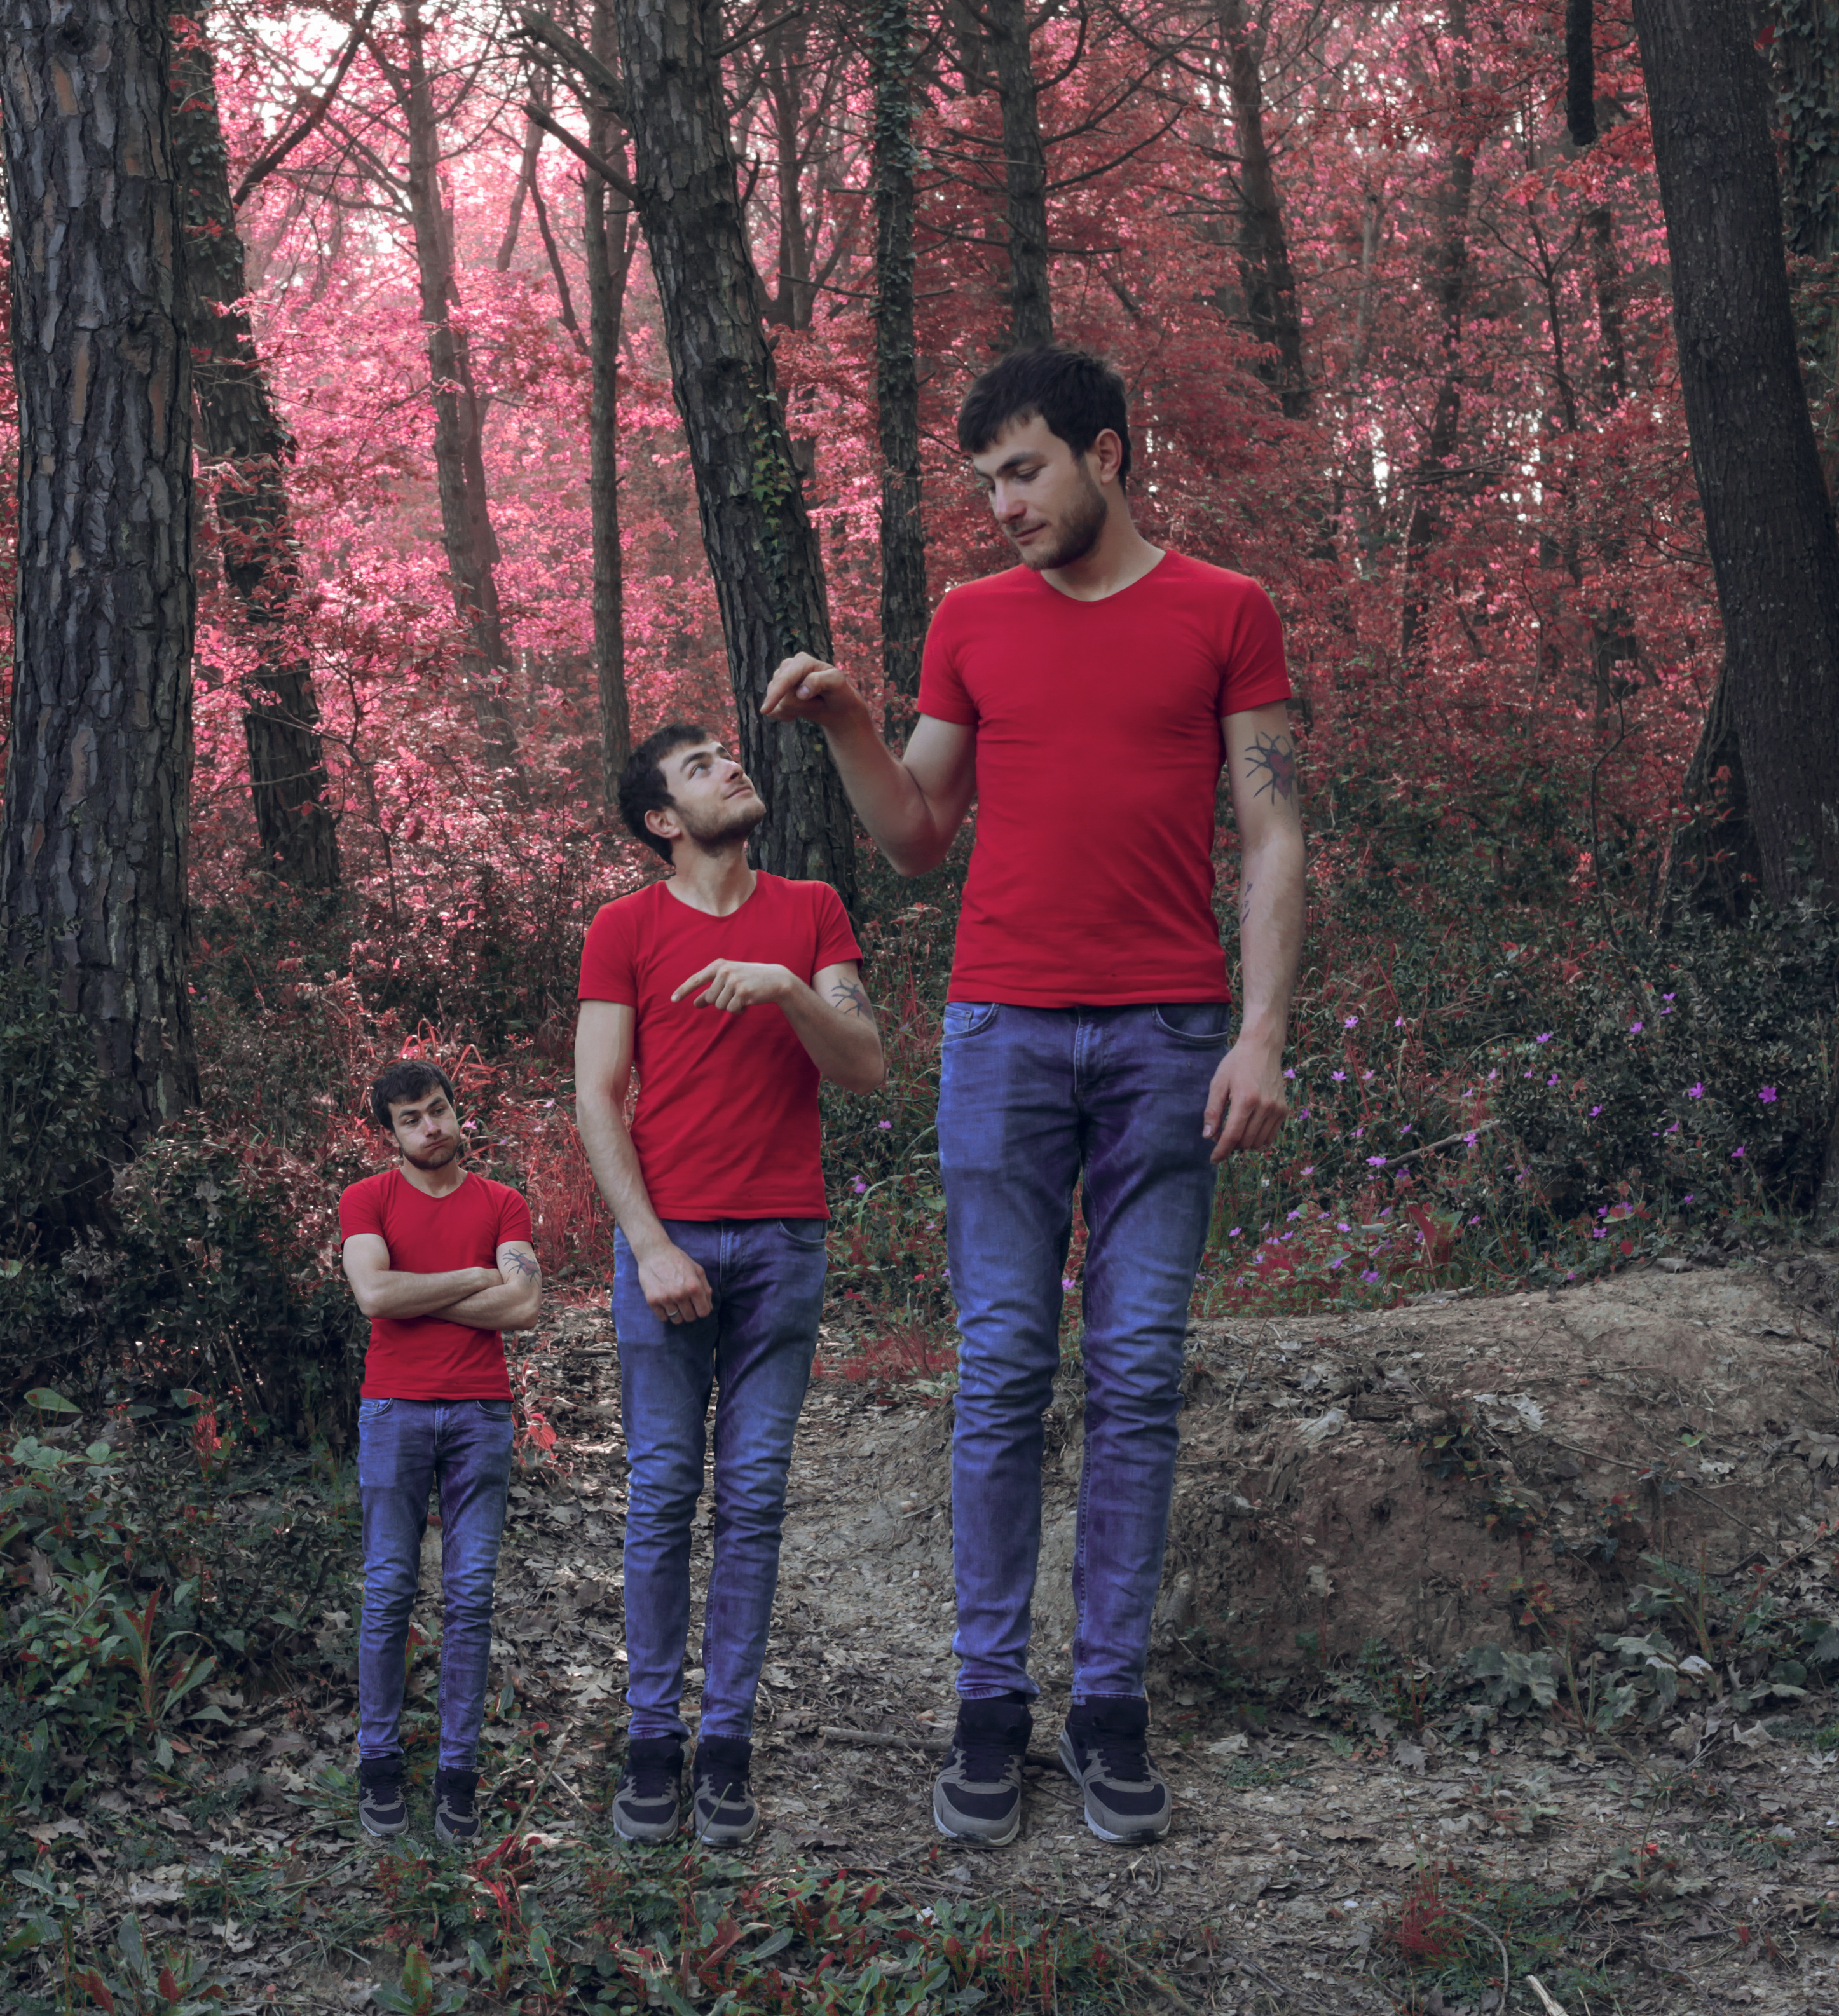 Three men in red t-shirts and blue jeans